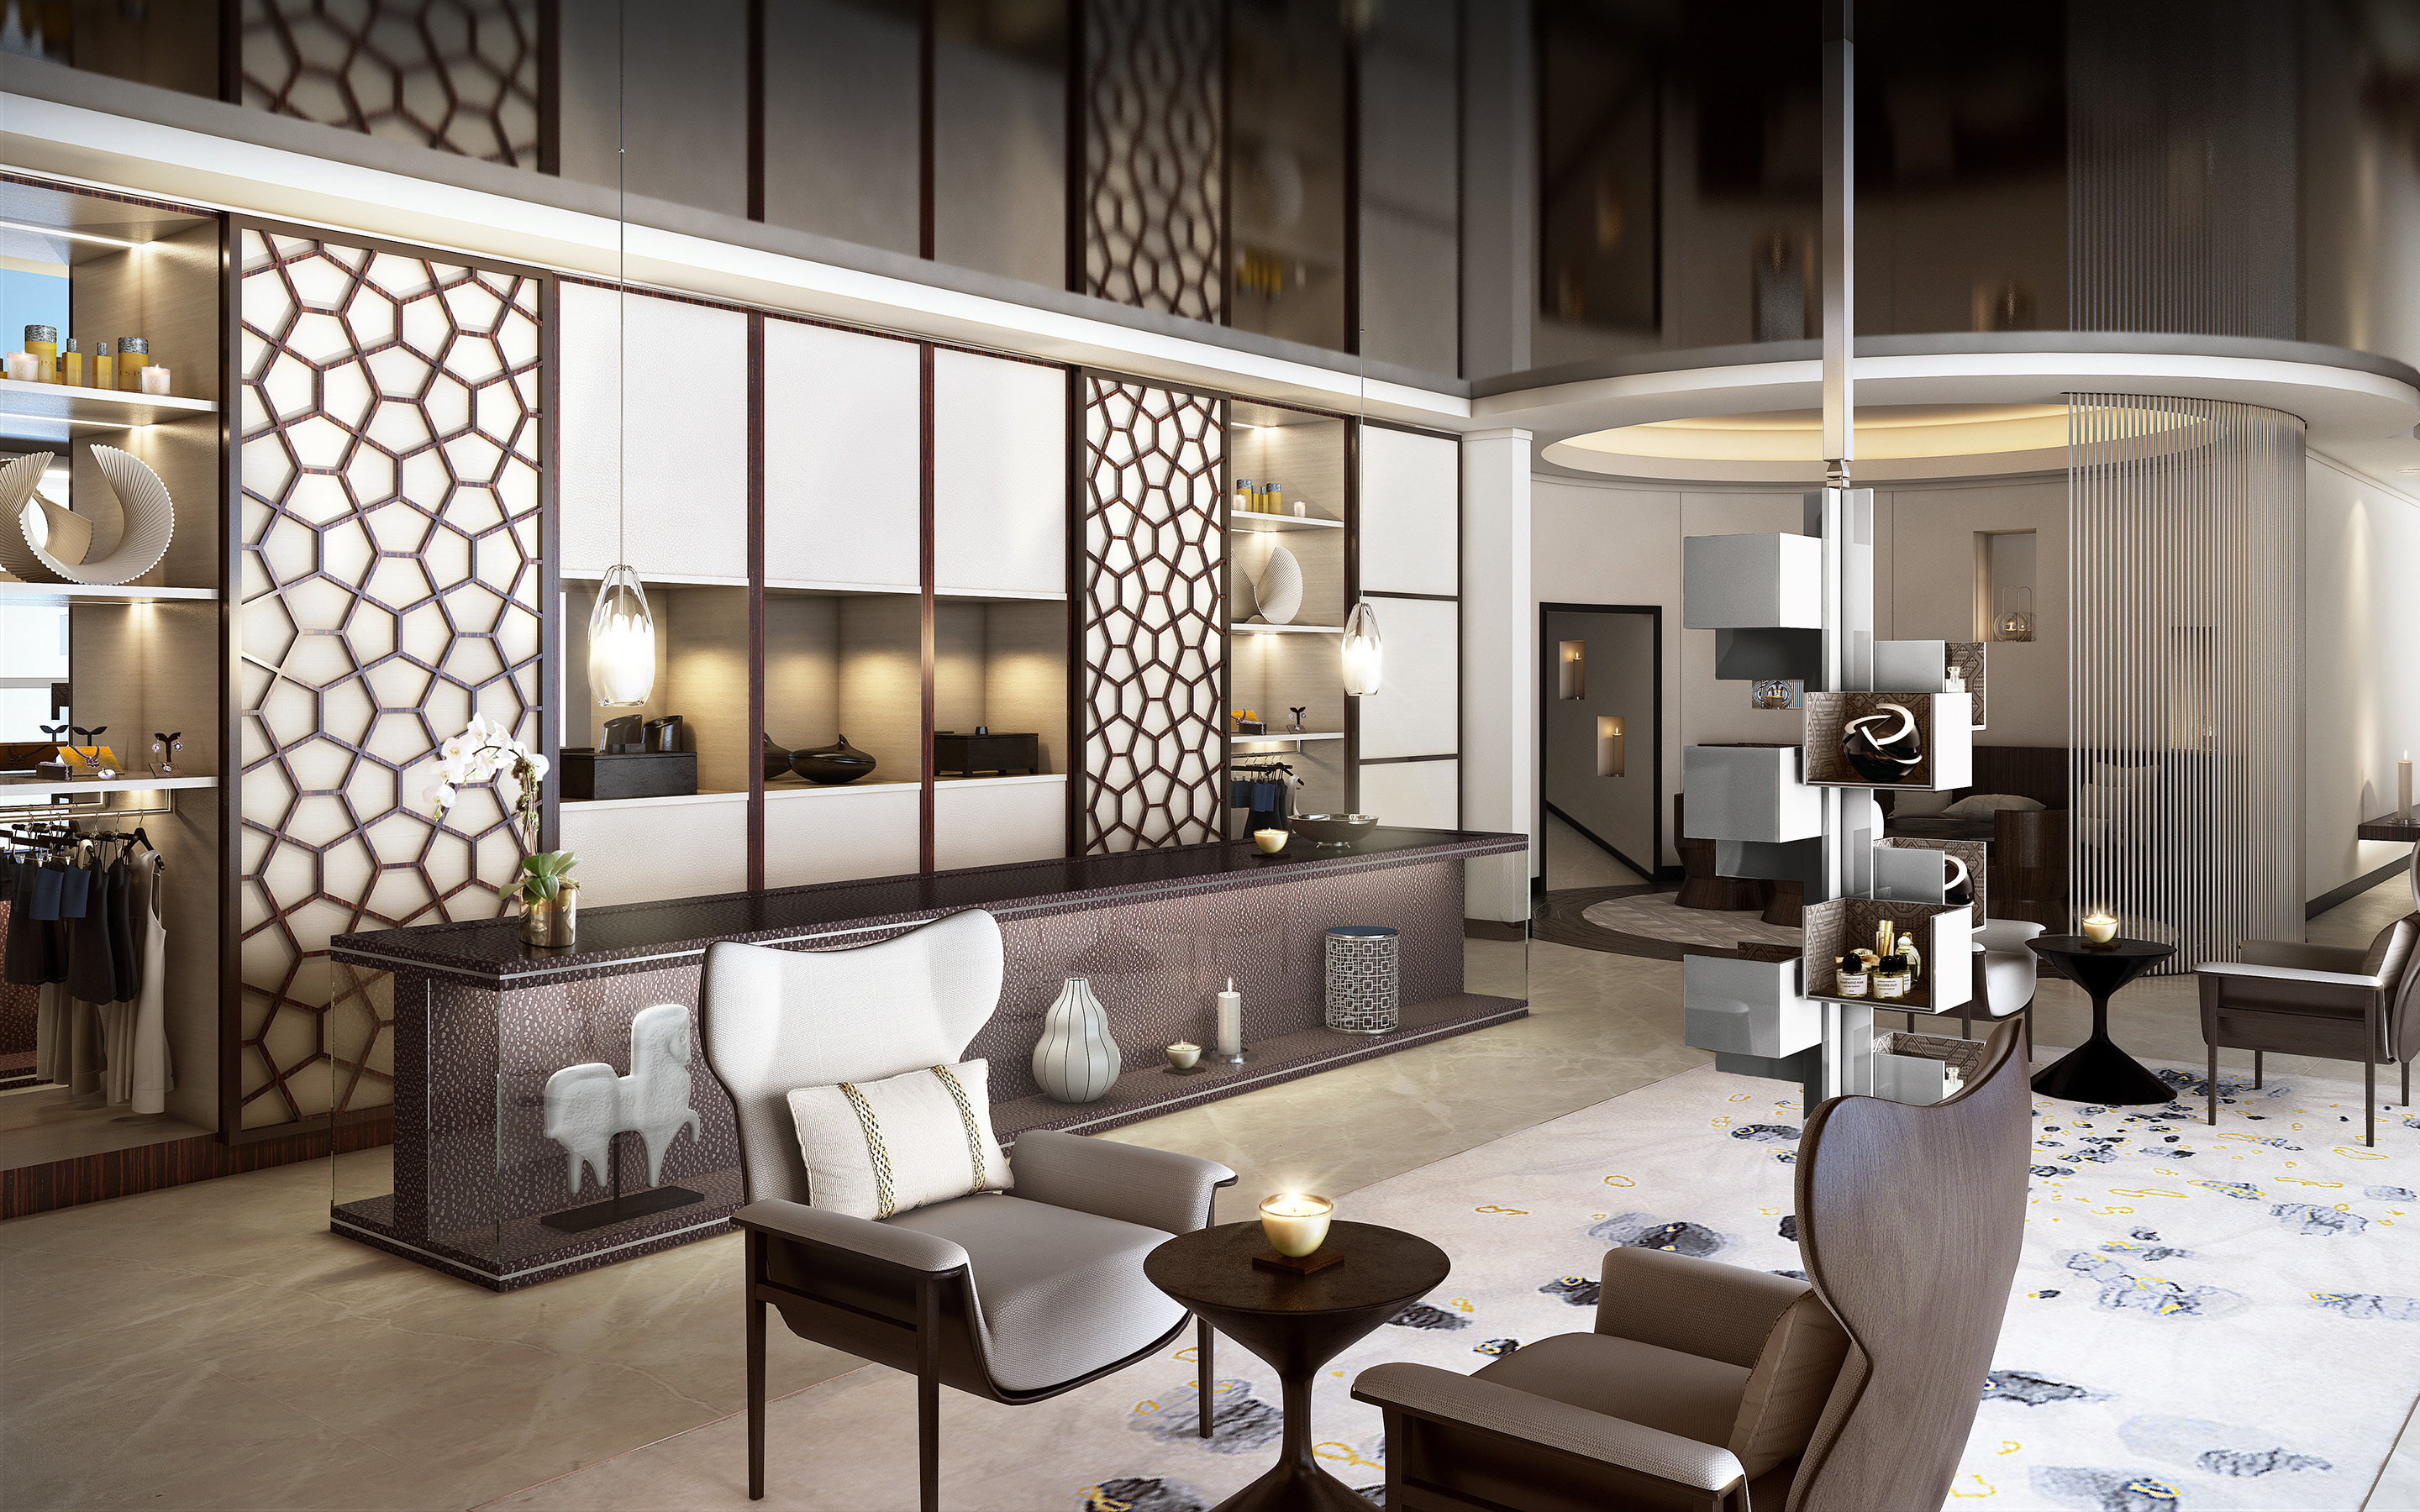 Luxury hotel qatar the gettys group for Luxury hotel room interior design